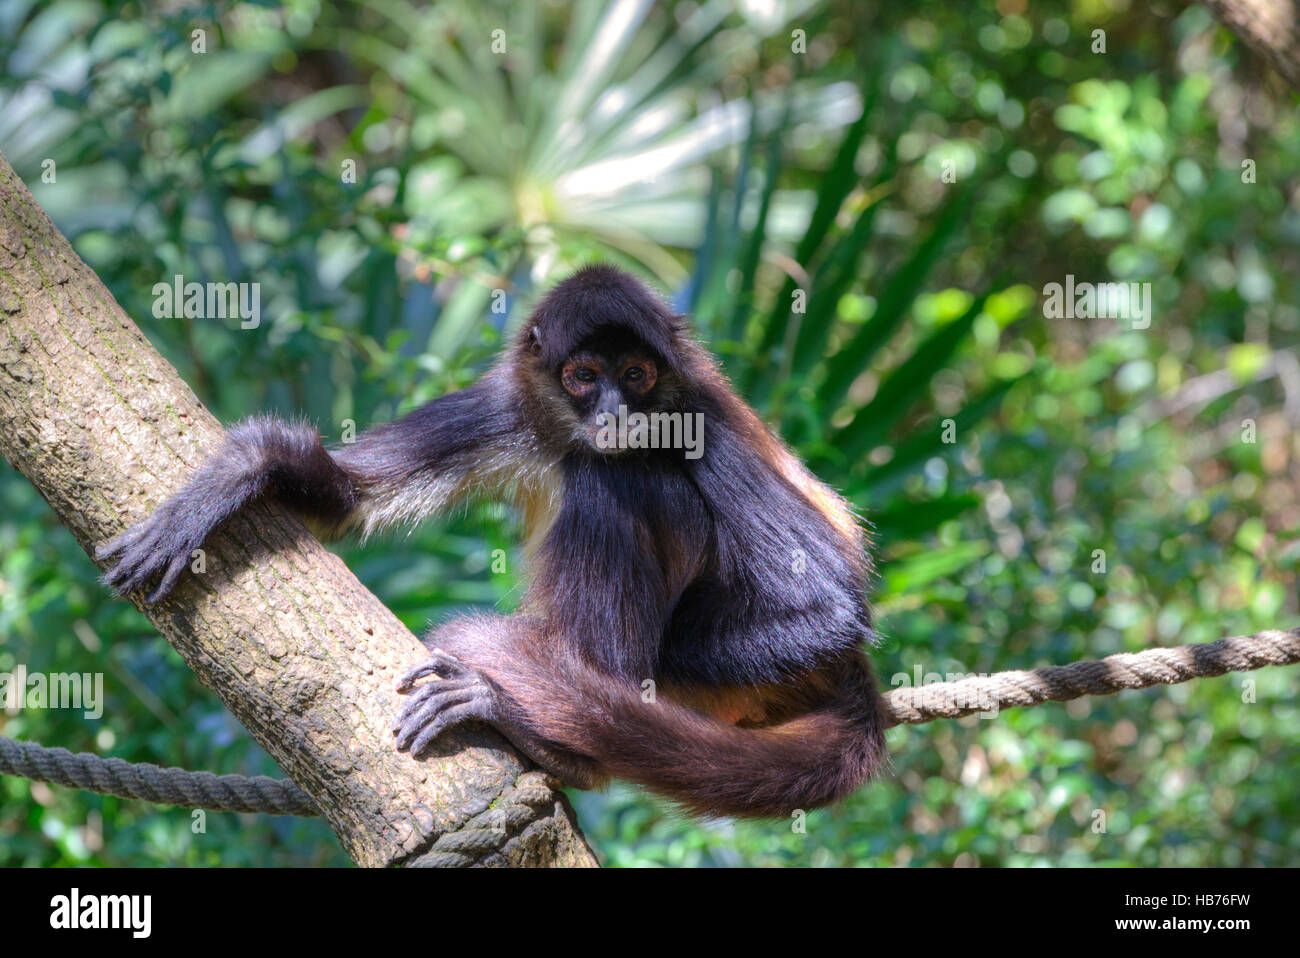 Singe-araignée (Latin-Ateles fusciceps), Zoo de Belize, près de Belize City, Belize Photo Stock